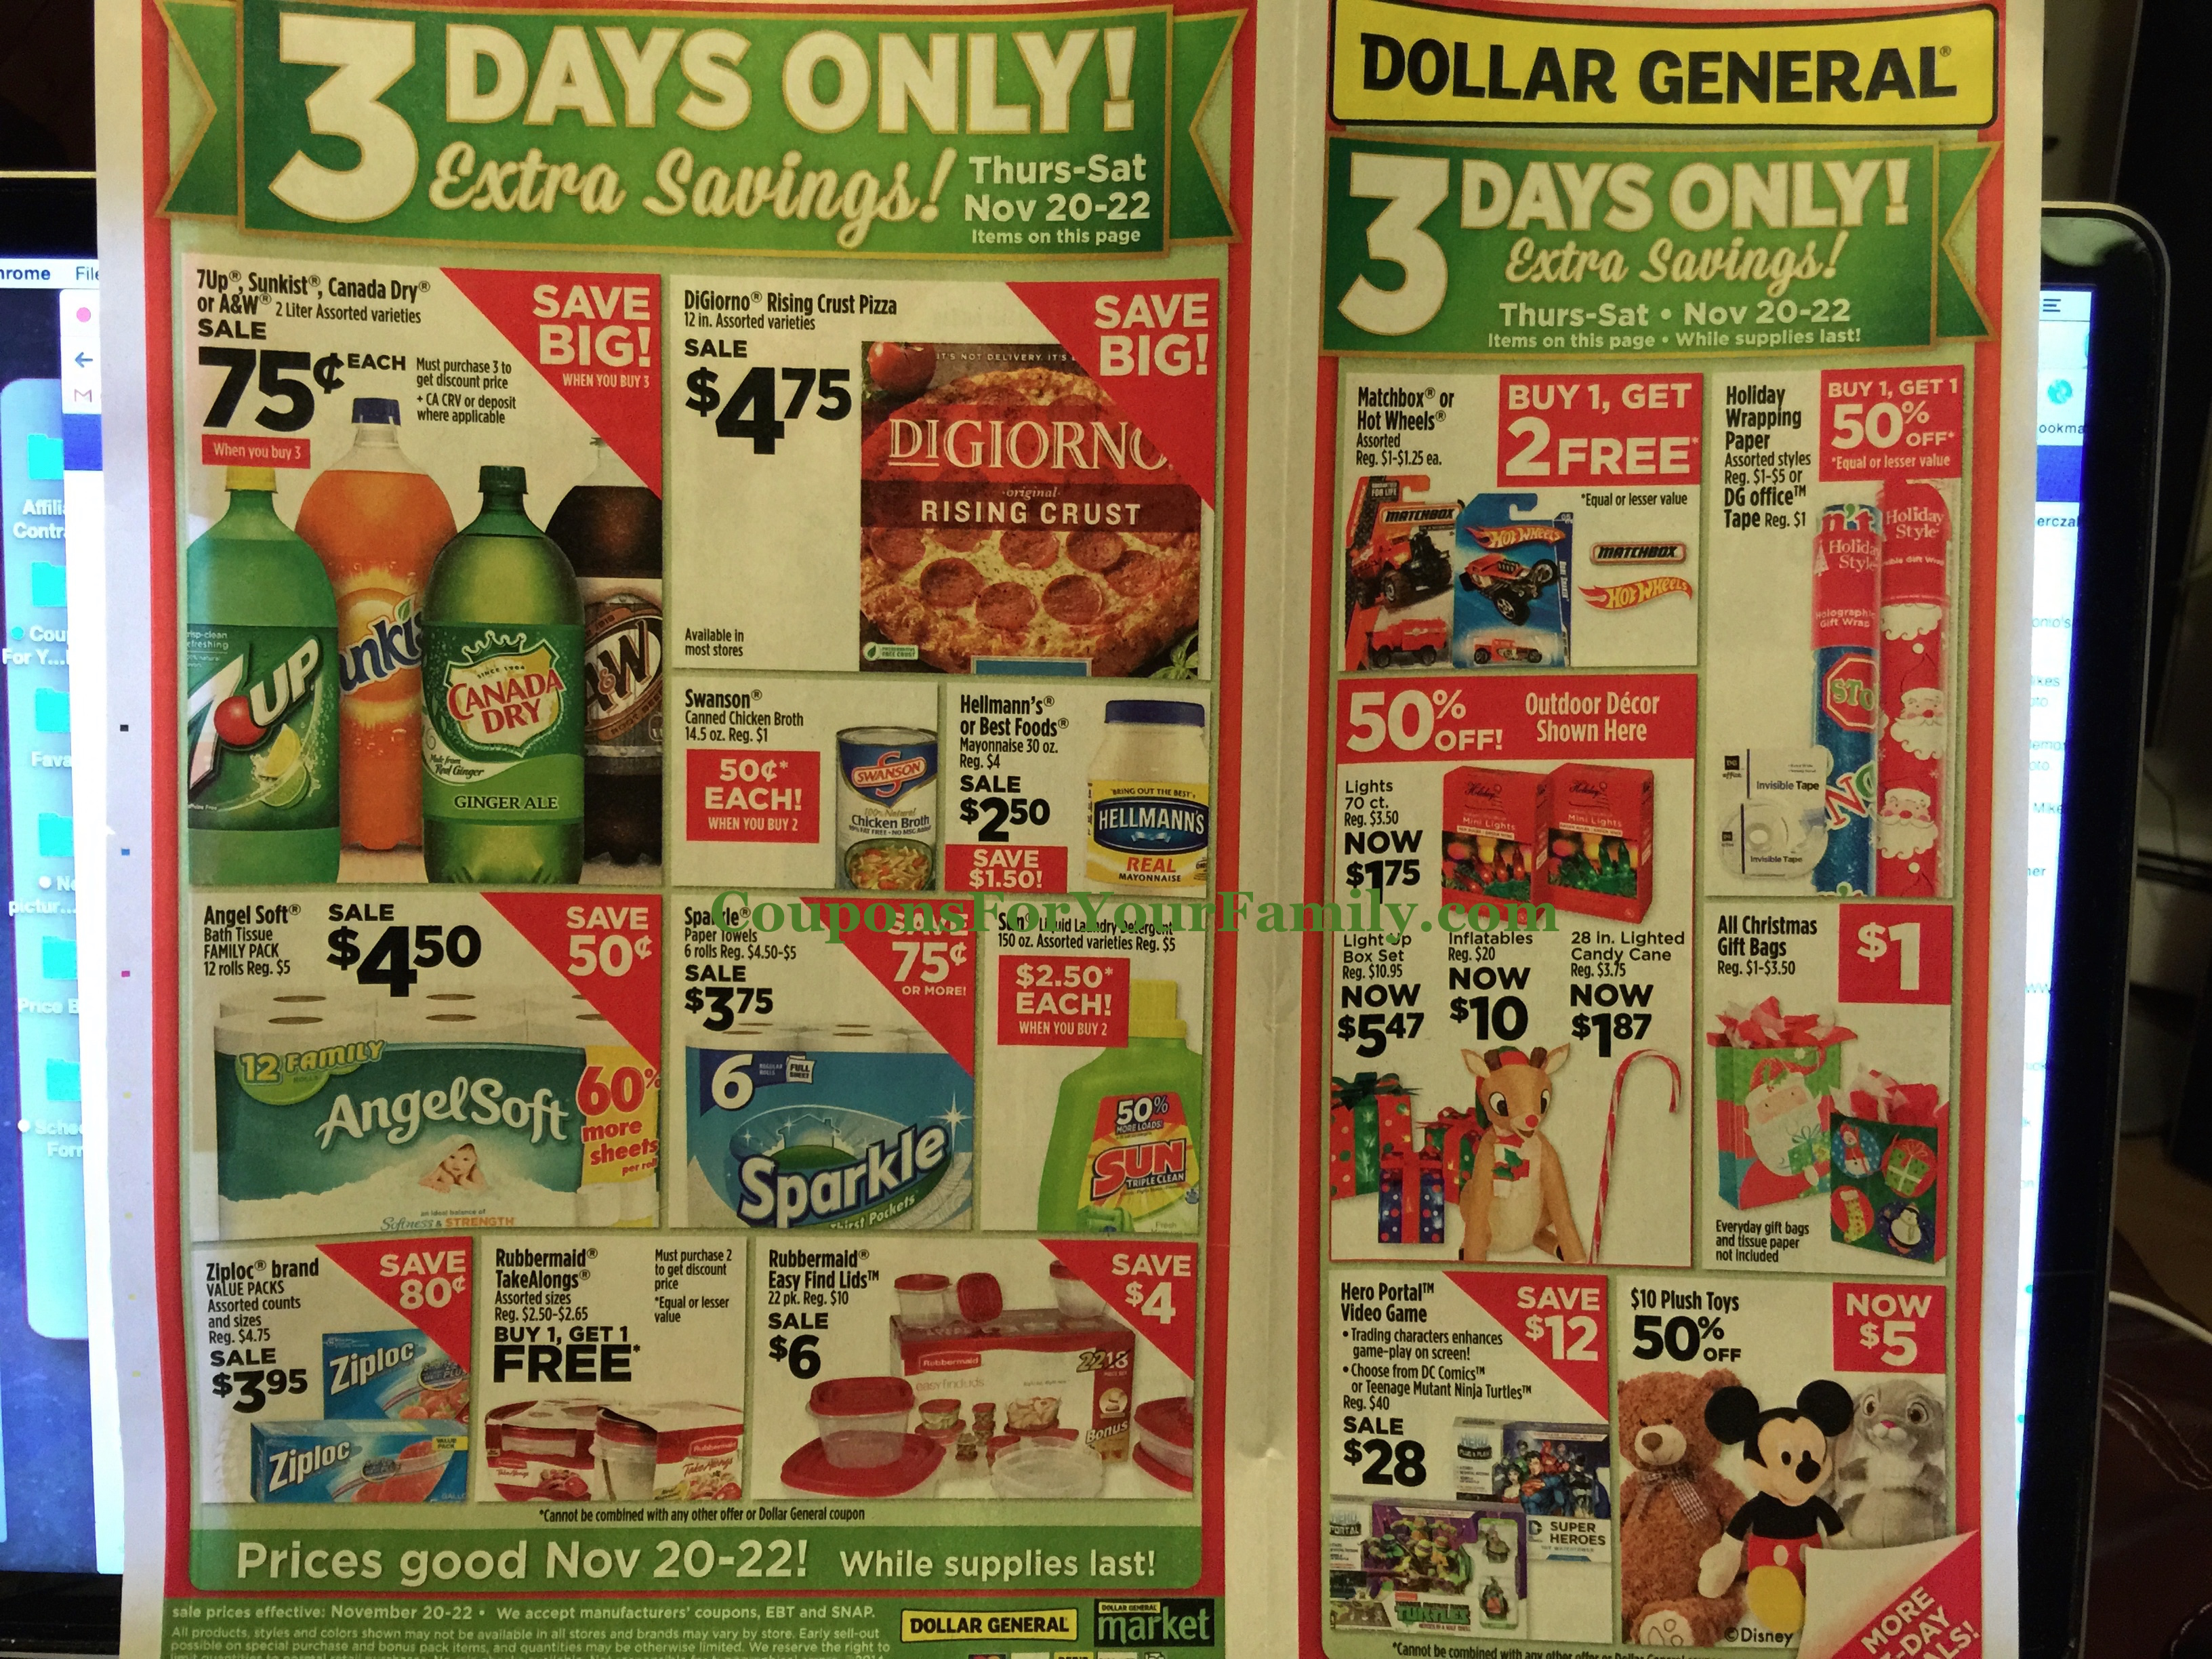 Dollar General Ad Scan Nov 16 plus Free Soda, $.33 Swanson Broth, $.70 Tide Pods Stock up Deal, $1.45 Frenchs Onions and more